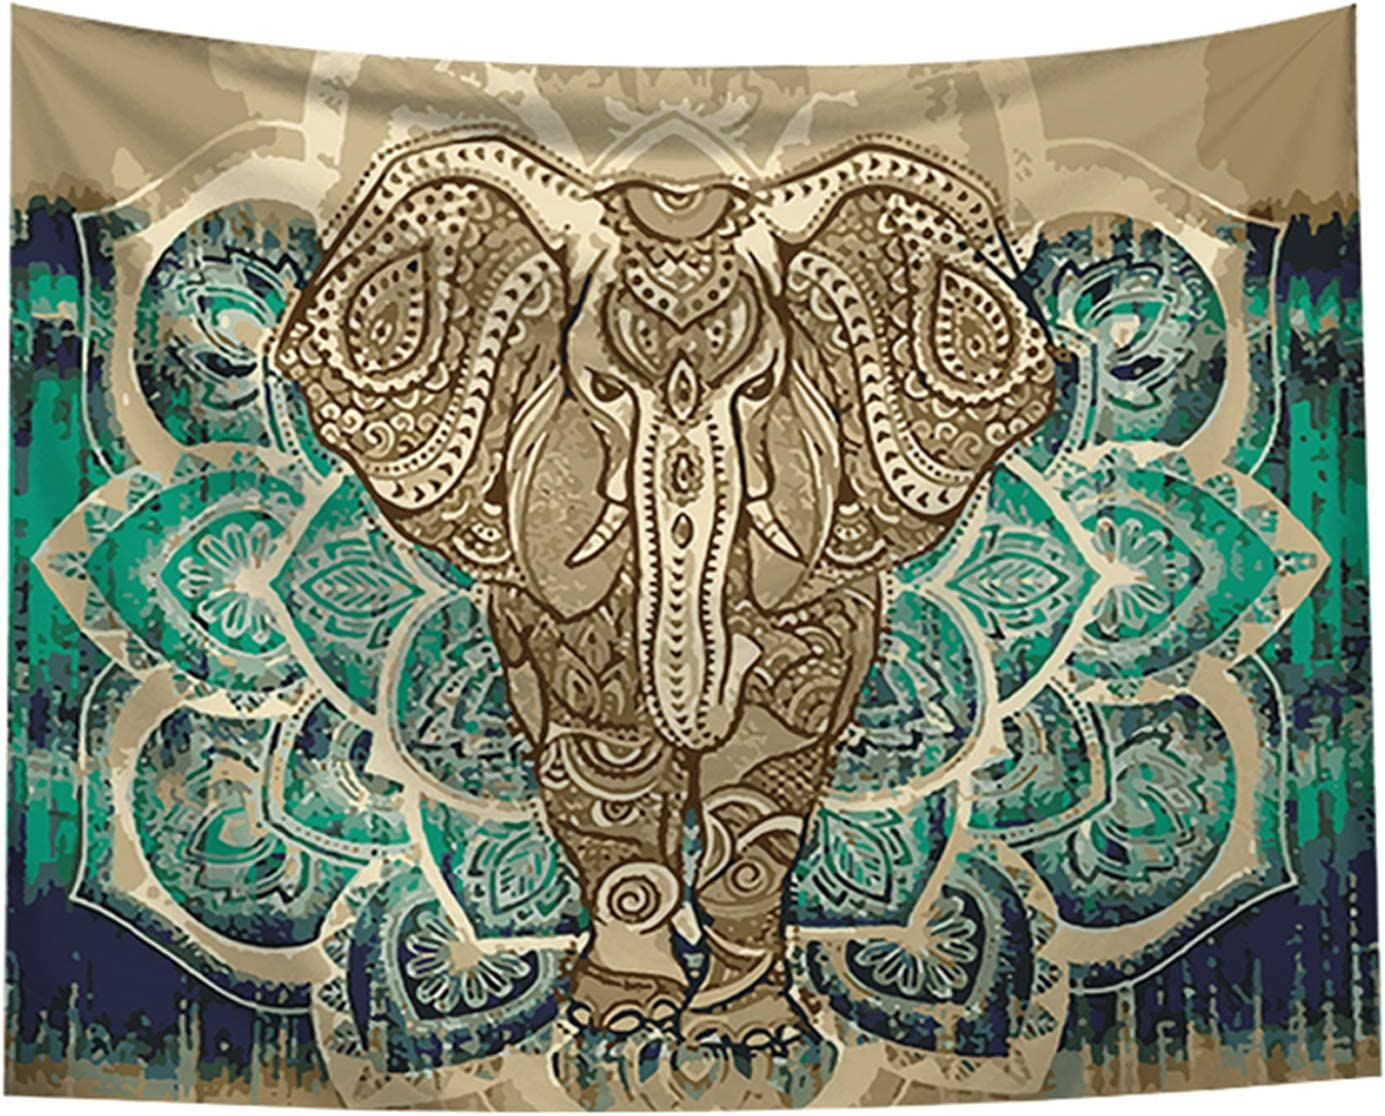 "Bohemian Elephant Tapestry - Mandala Boho Vintage Watercolor Yoga Wall Hanging Indian Art Home Decoration Bedroom Decor Living Room Door Curtain Balcony Sheer Room Divider 59.1"" × 51.2"""